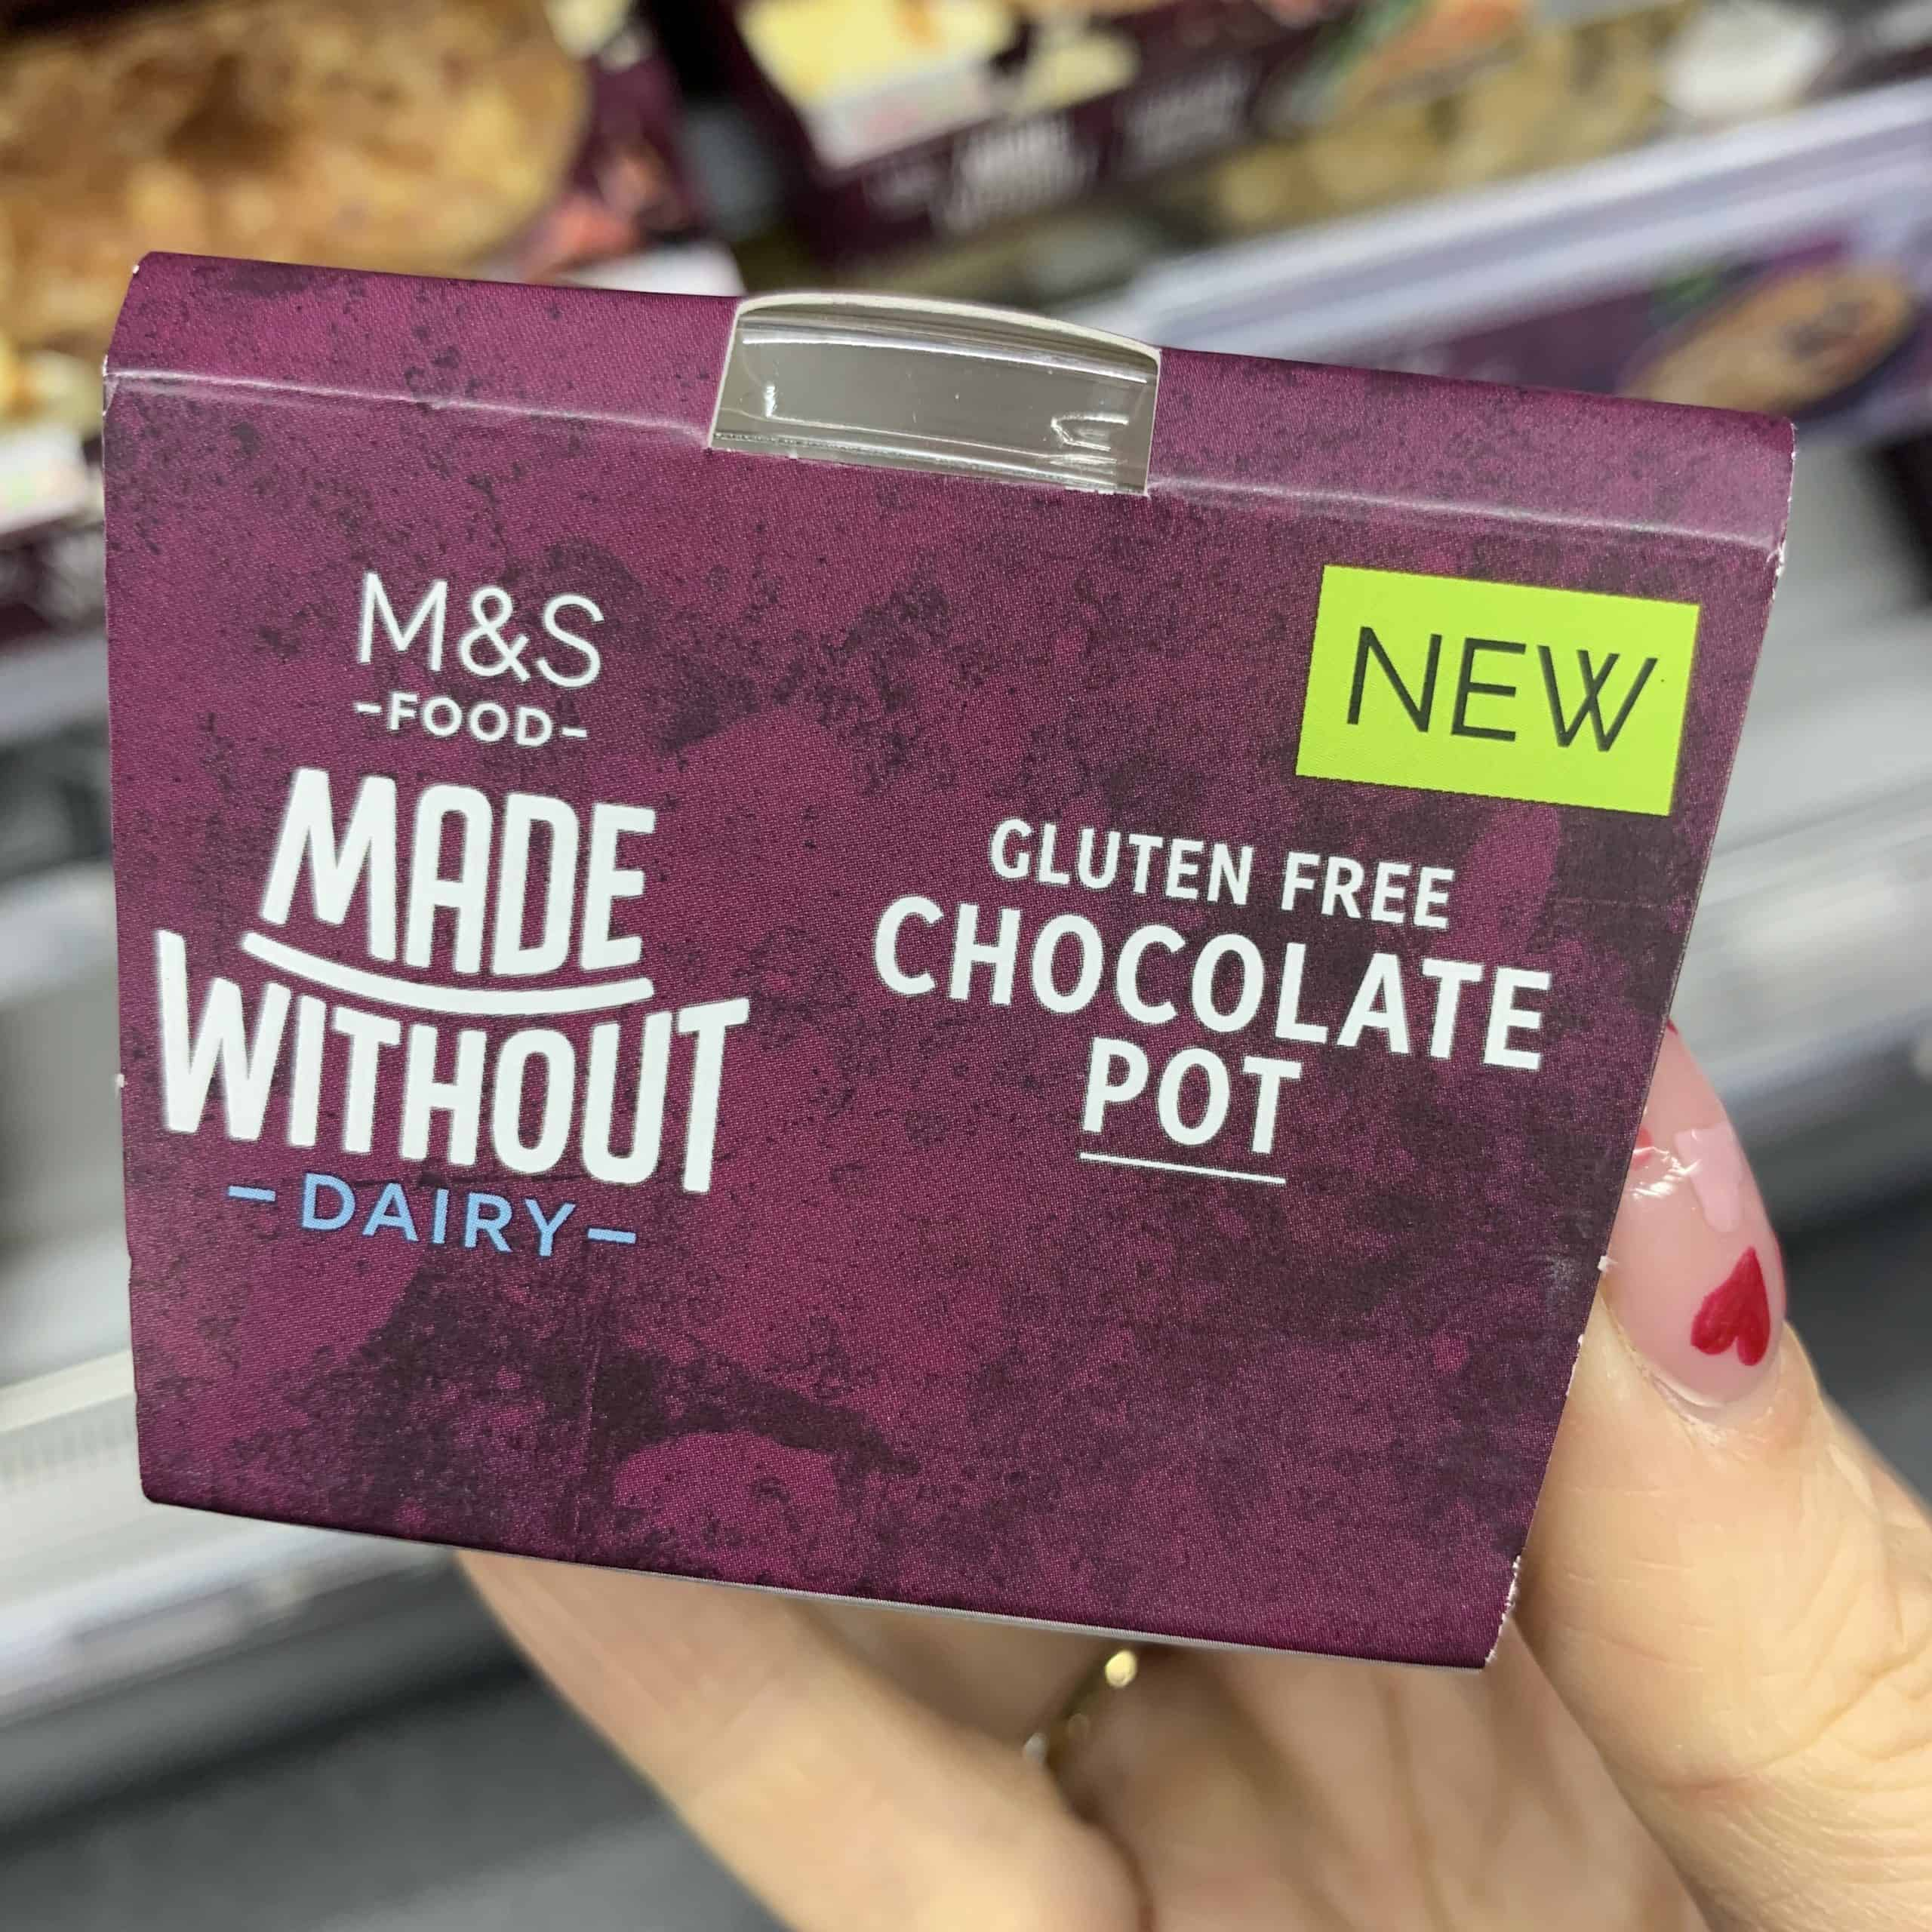 m&S made without dairy gluten free chocolate pot